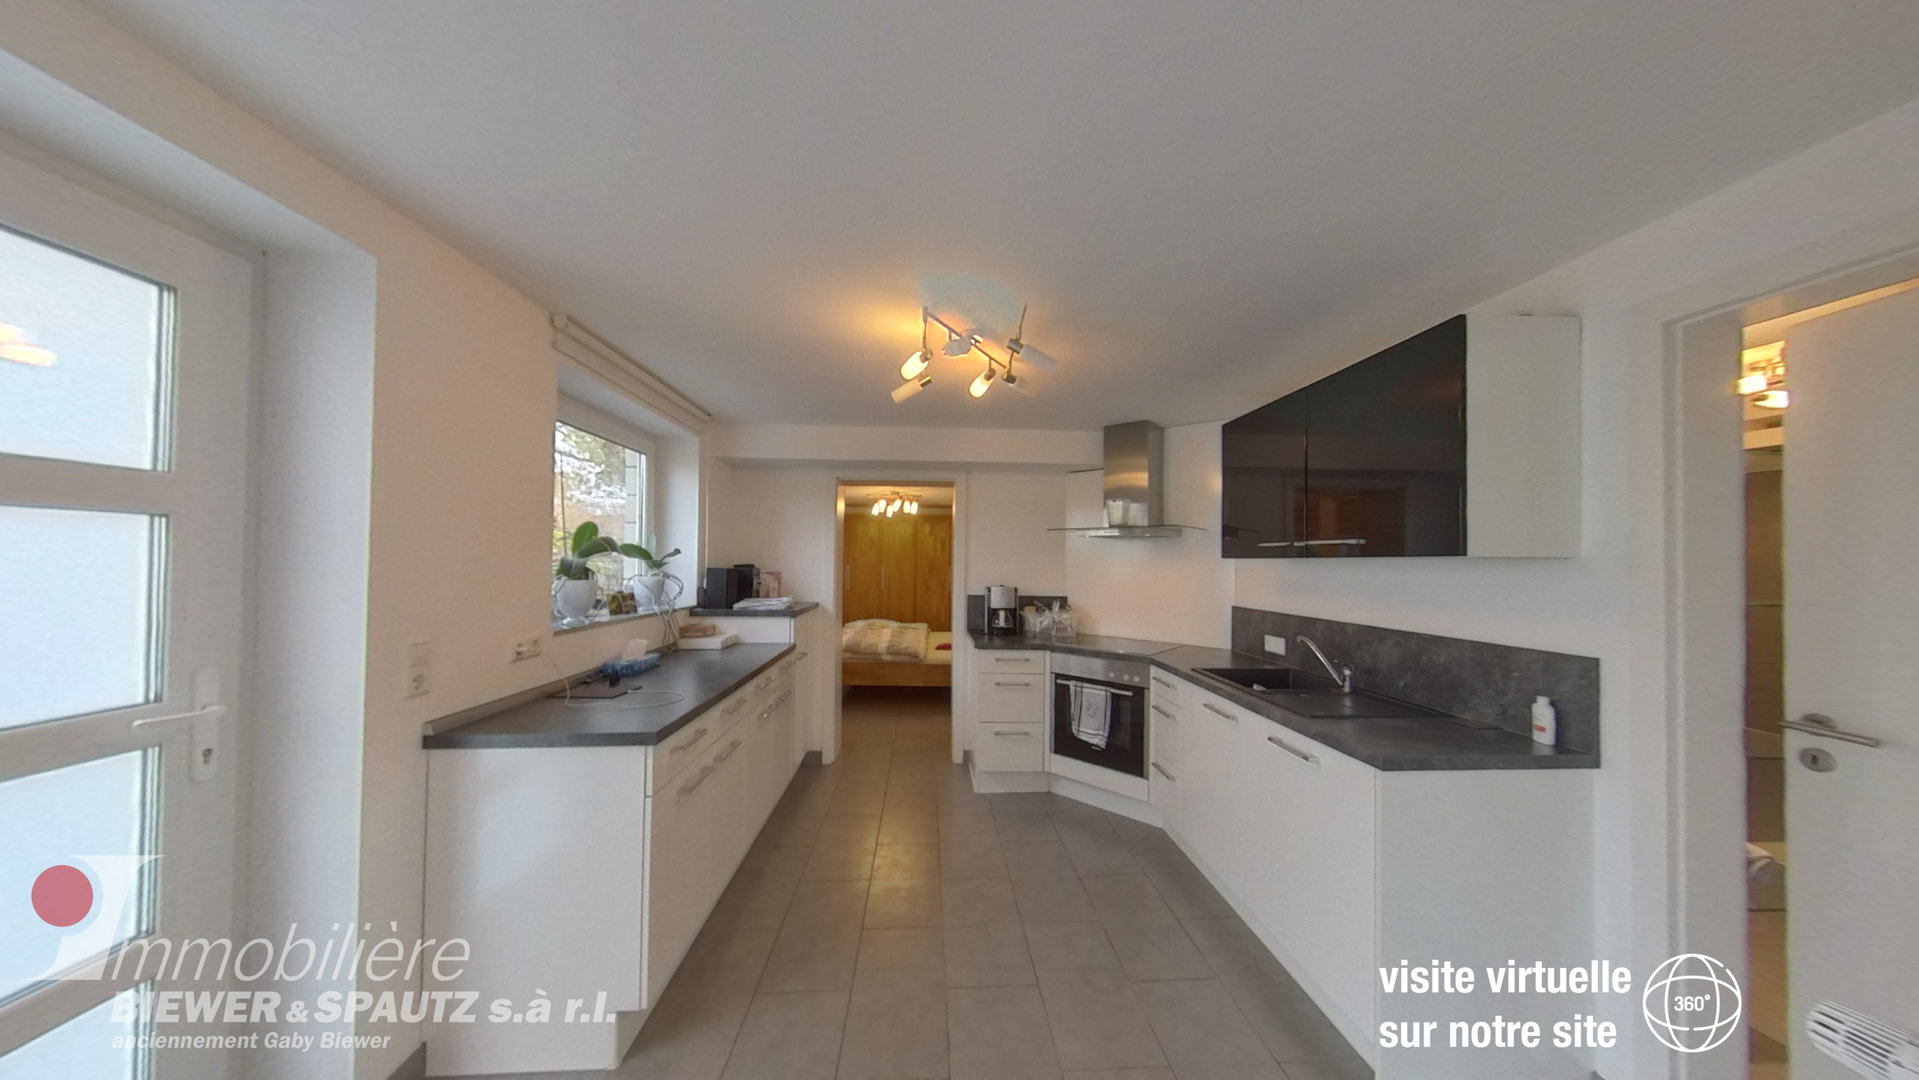 FOR RENT - furnished apartment with 1 bedroom in Olingen